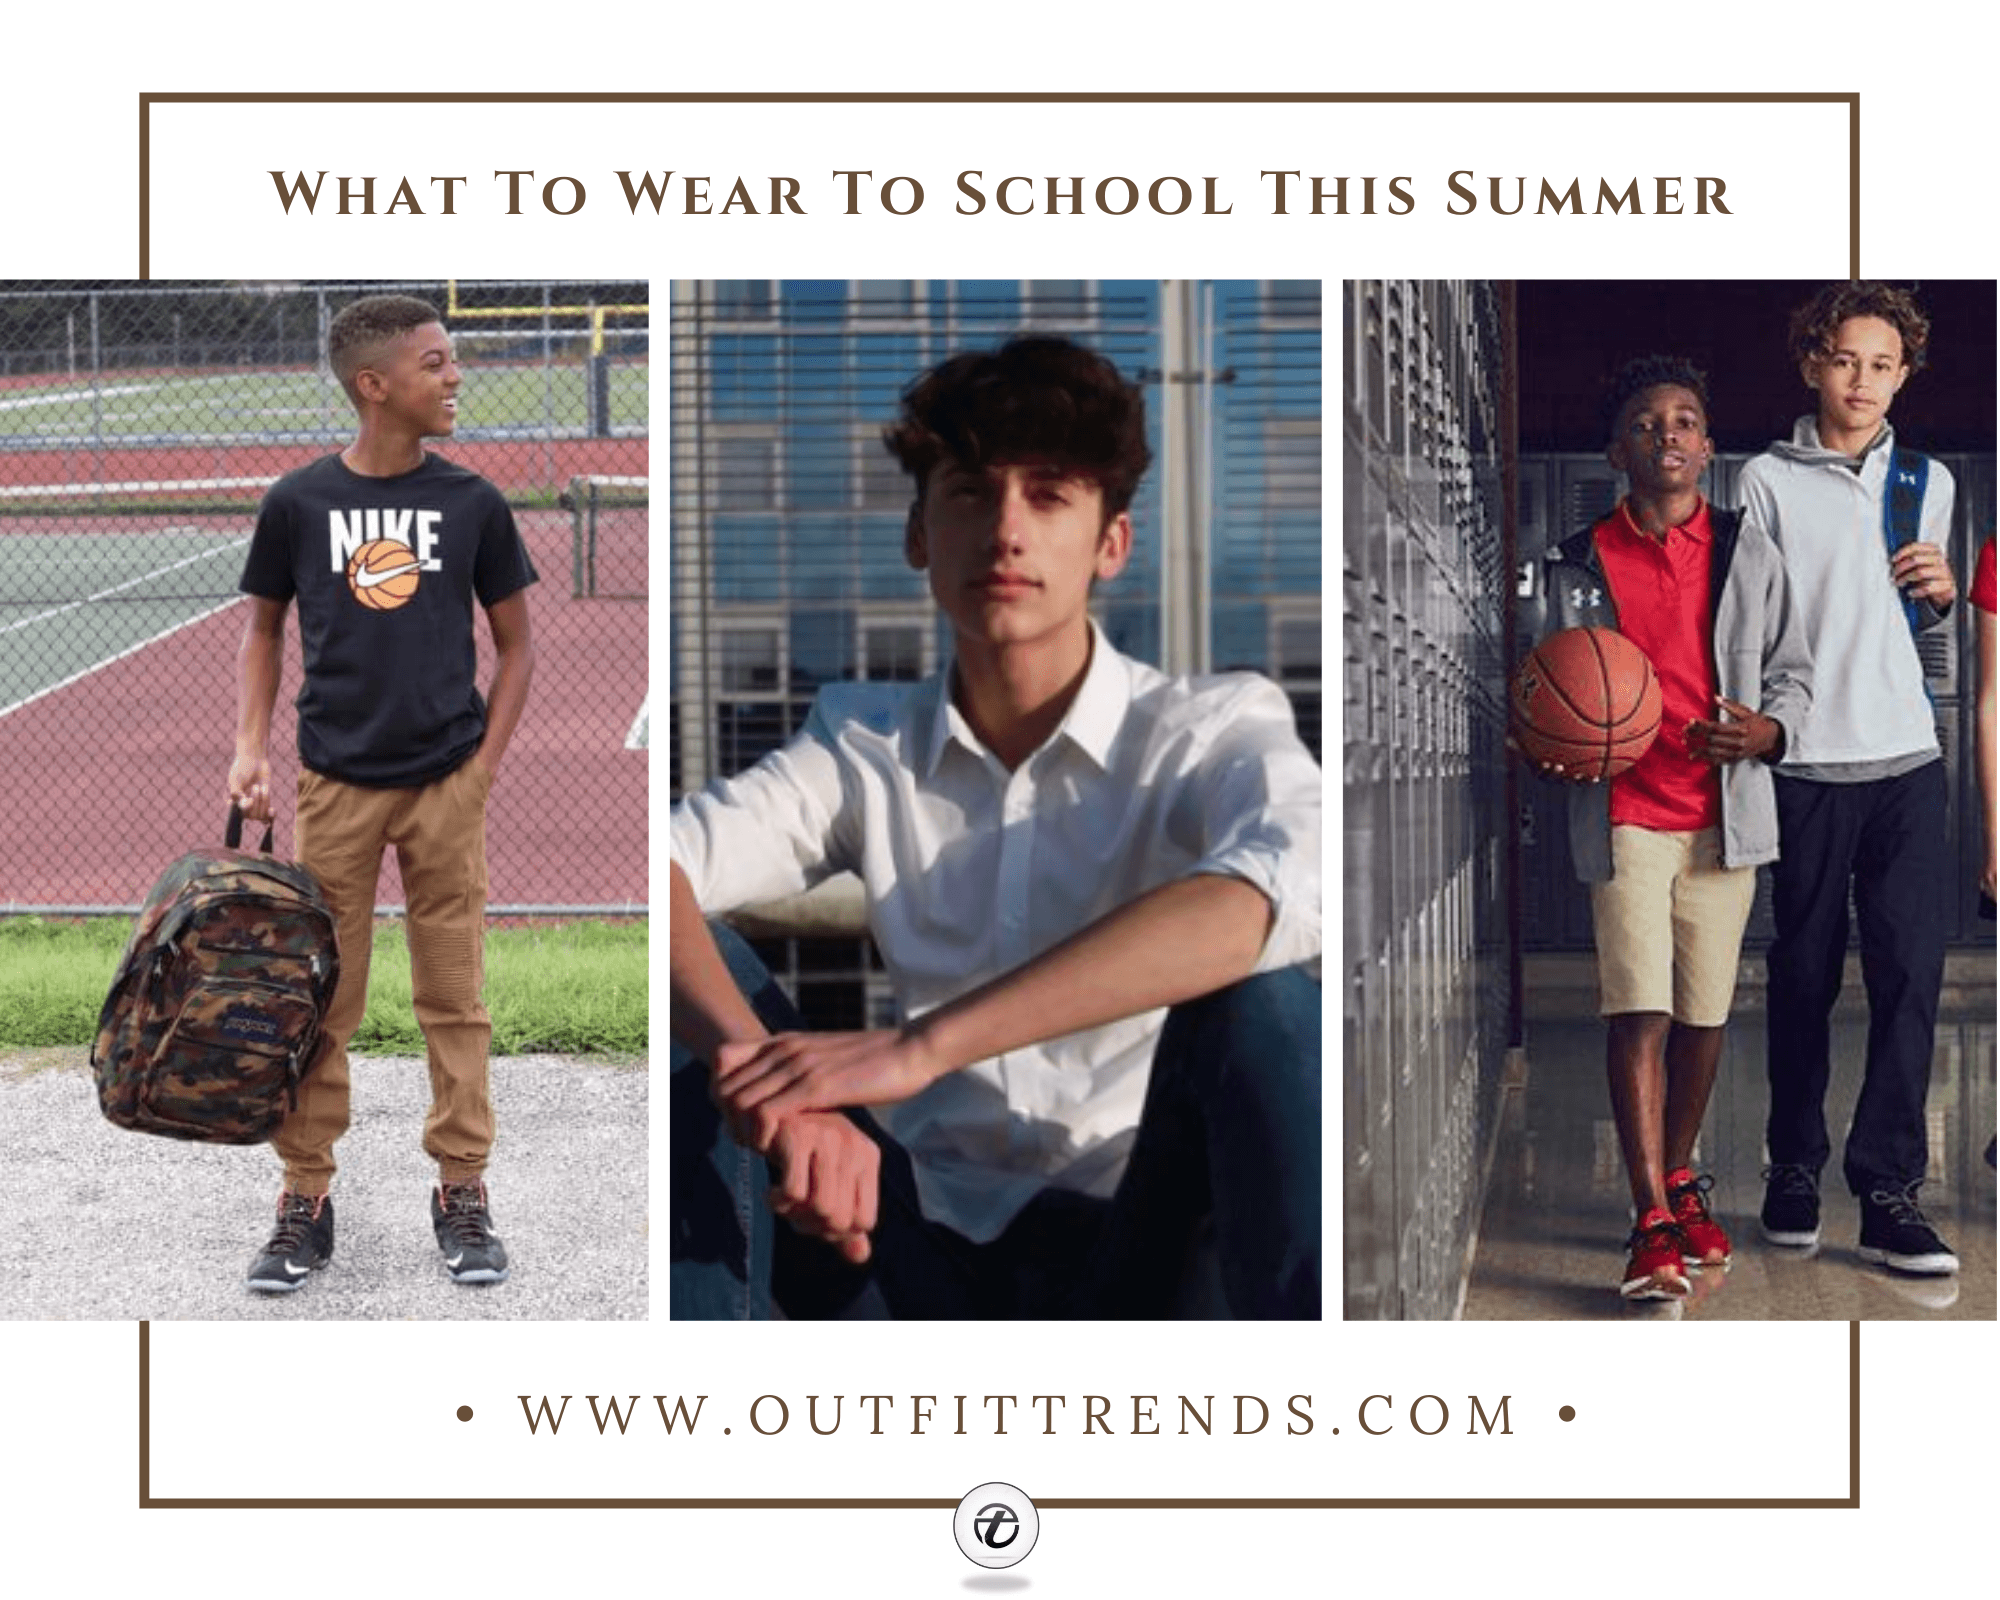 Summer School Outfits | 45 School Outfit Ideas for Boys